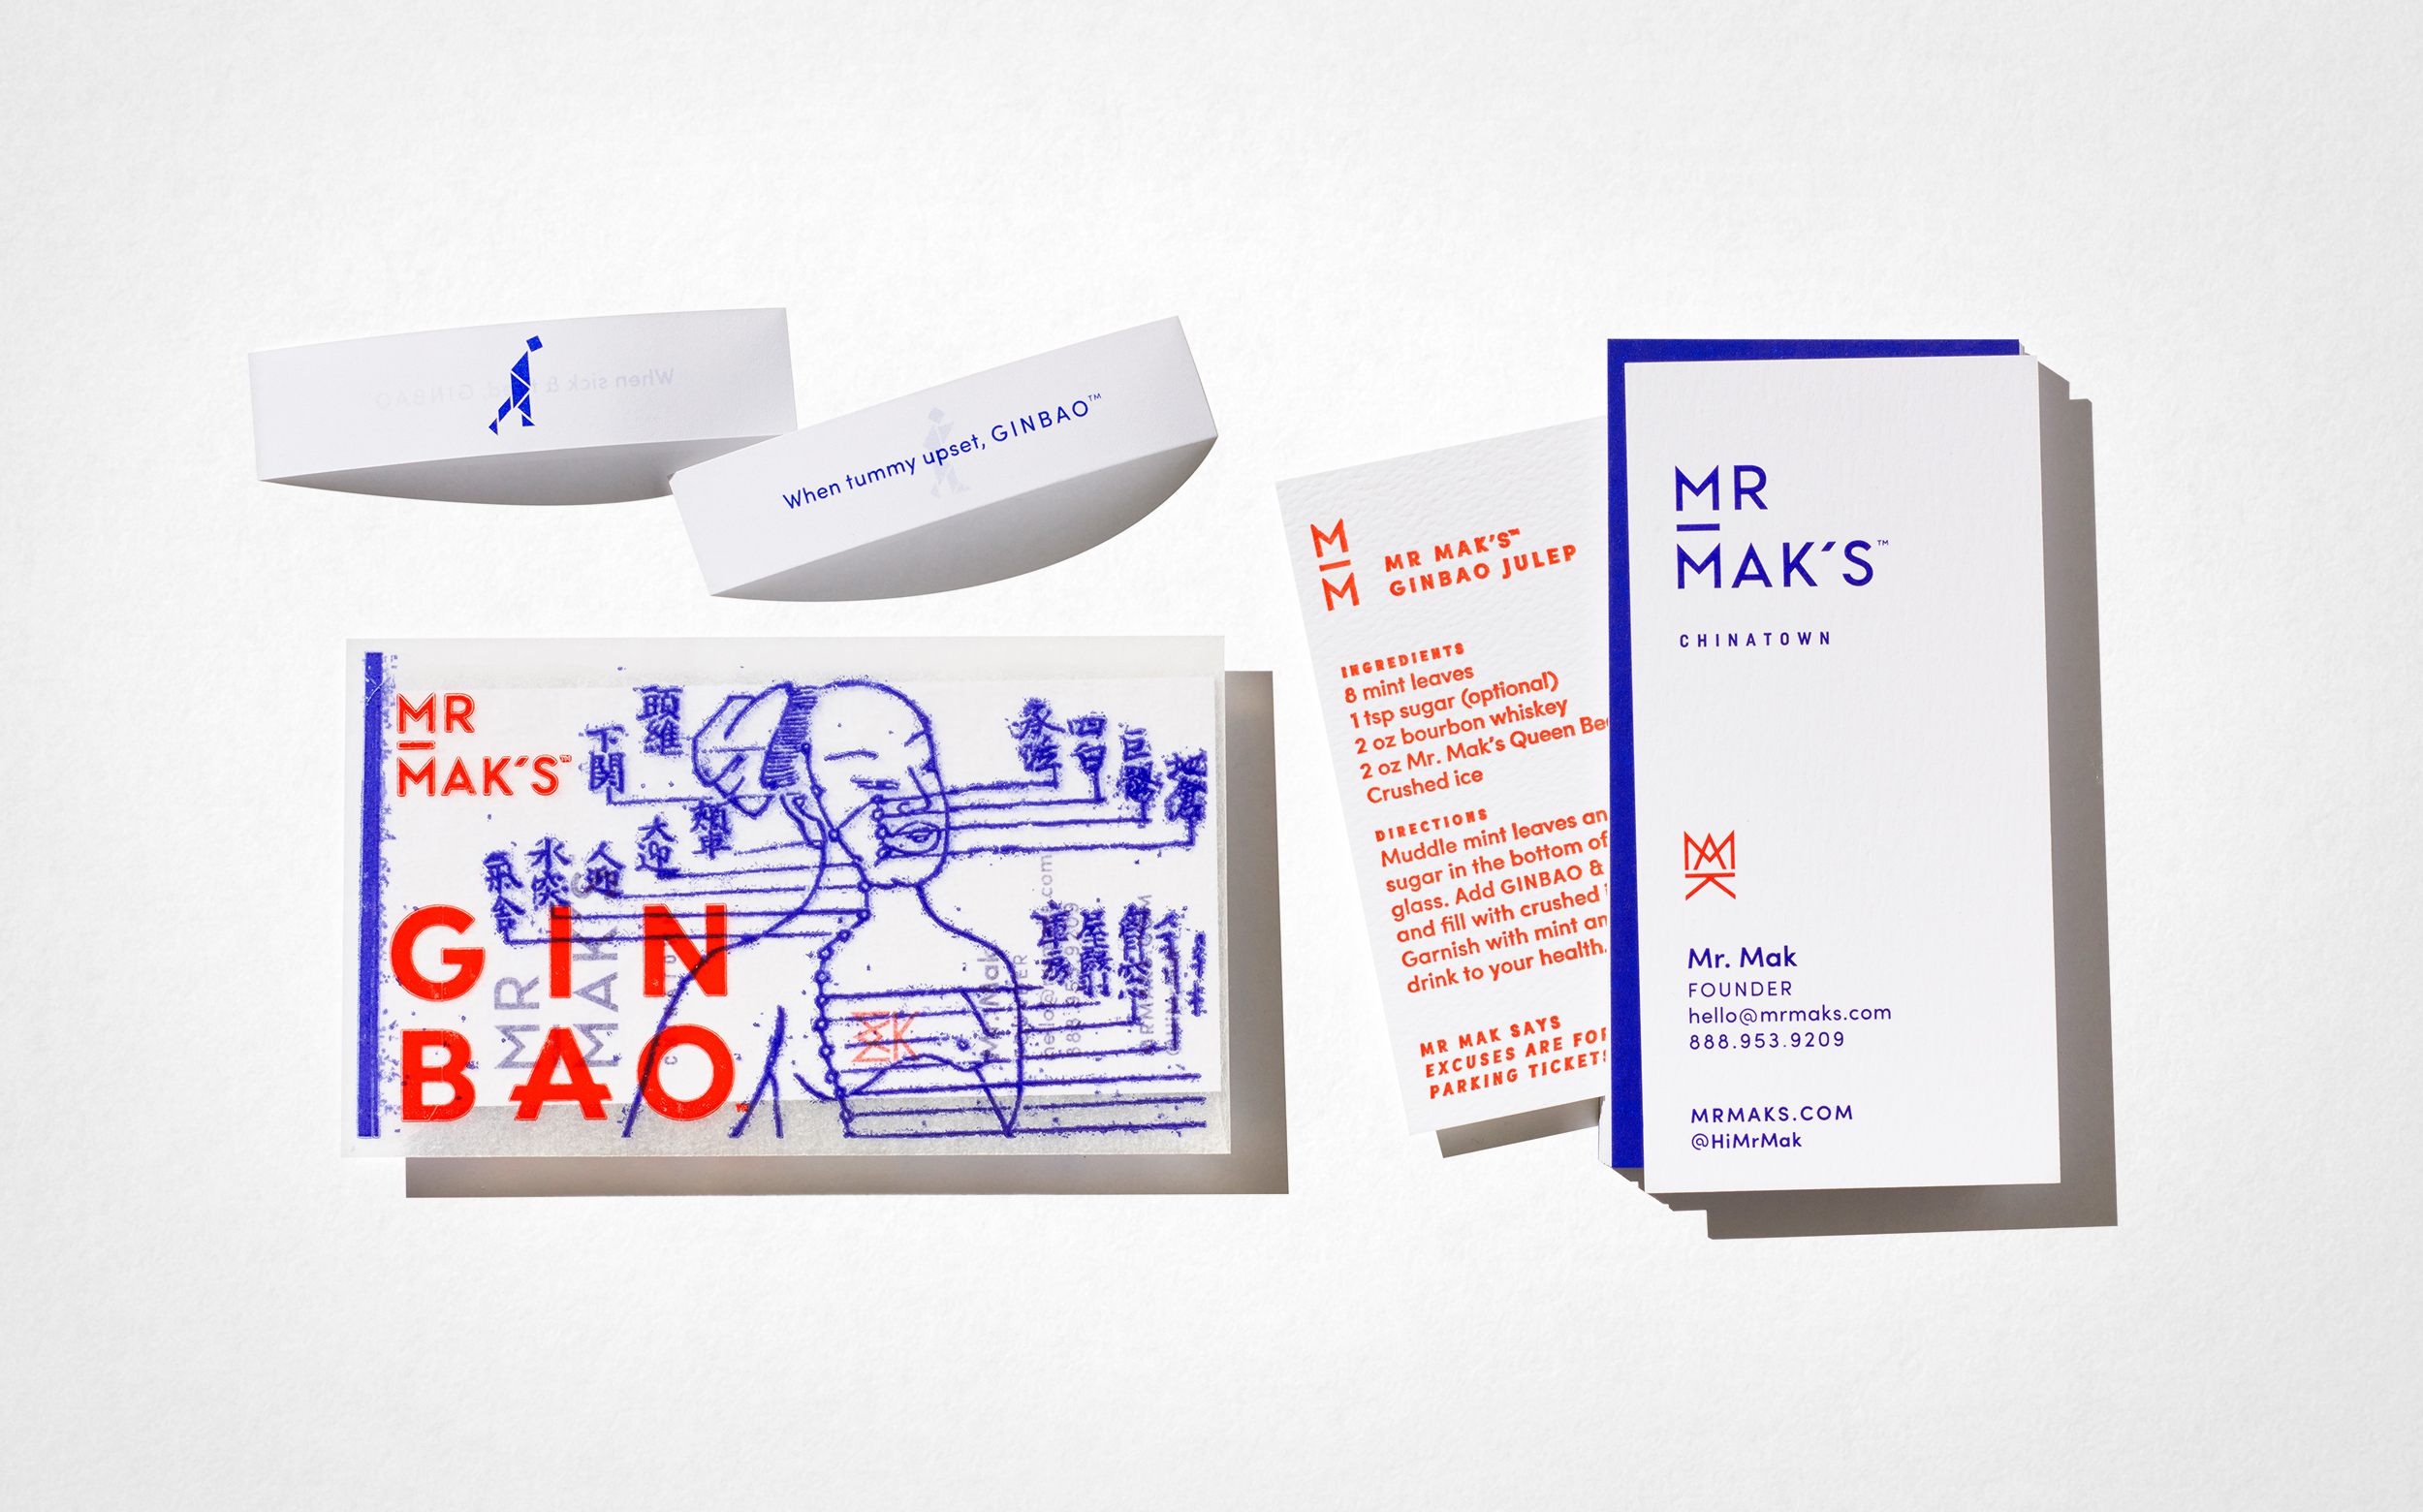 Mr. Mak's brand identity designed by Abby Haddican at Werner Design Werks.